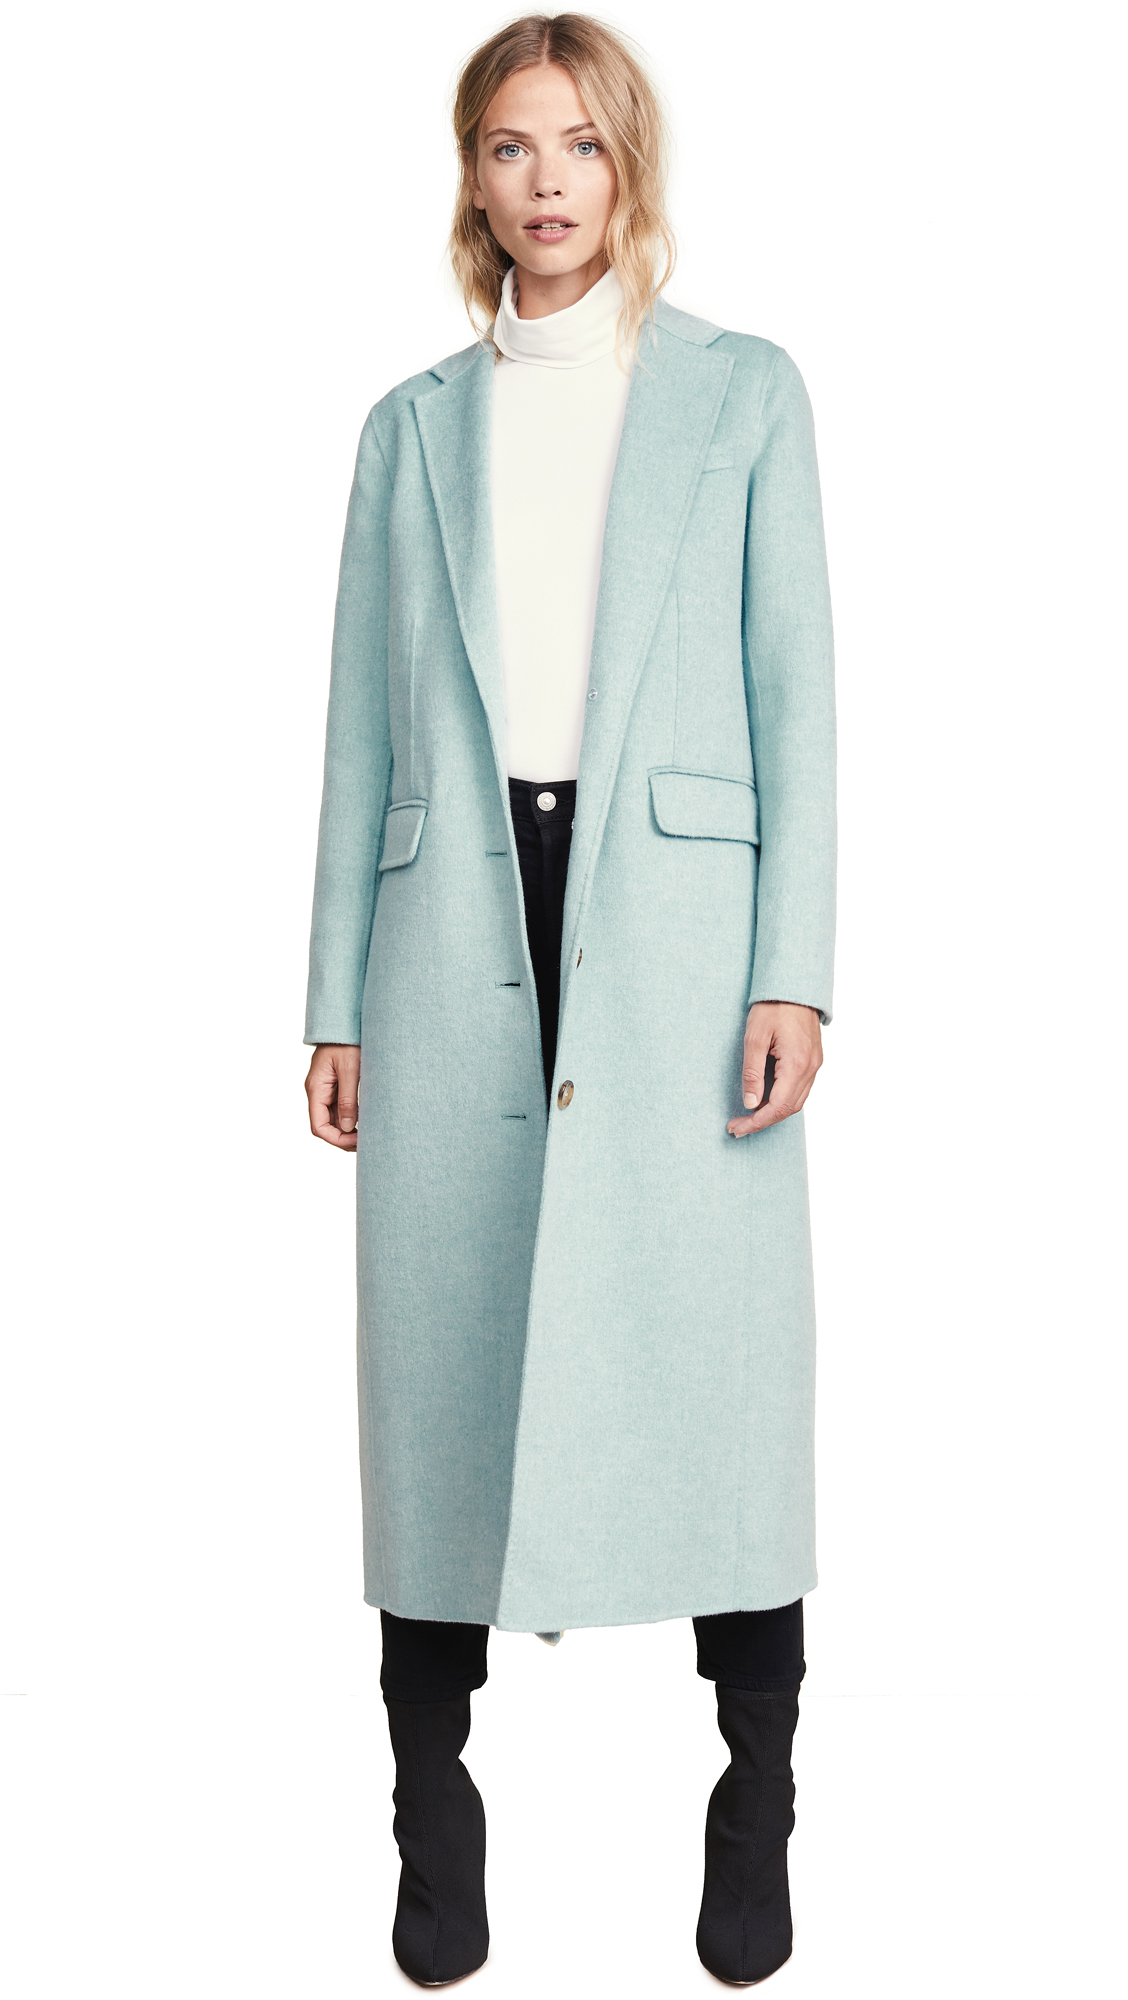 Elizabeth and James Russell Coat In Celadon